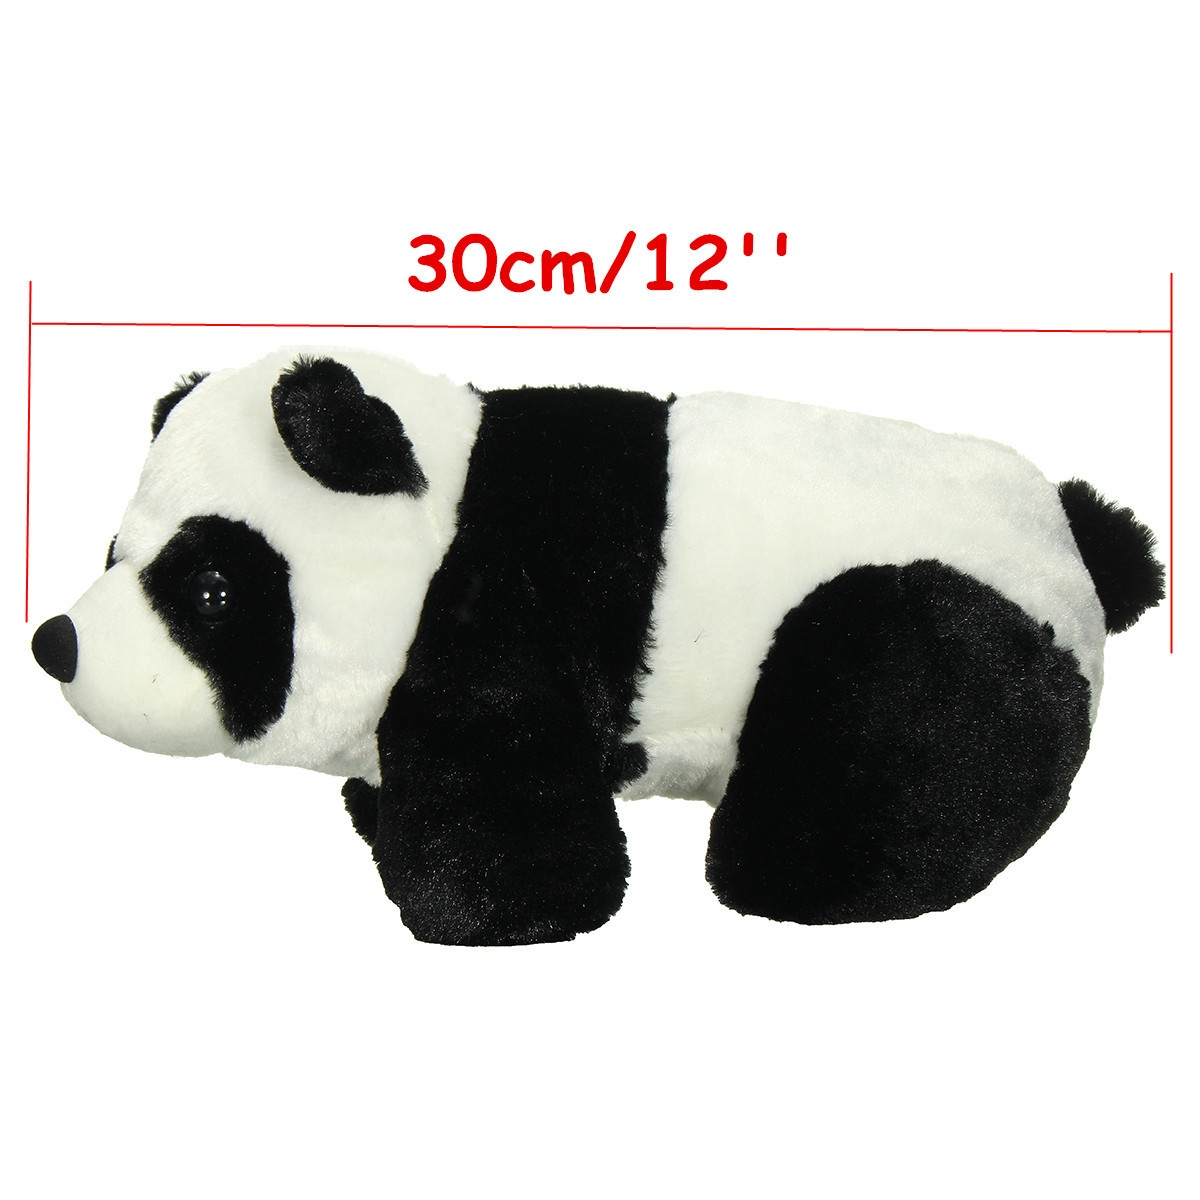 30cm 12'' Soft Plush Stuffed Panda PP Cotton Climbing Chinese Panda Doll Toy Gift